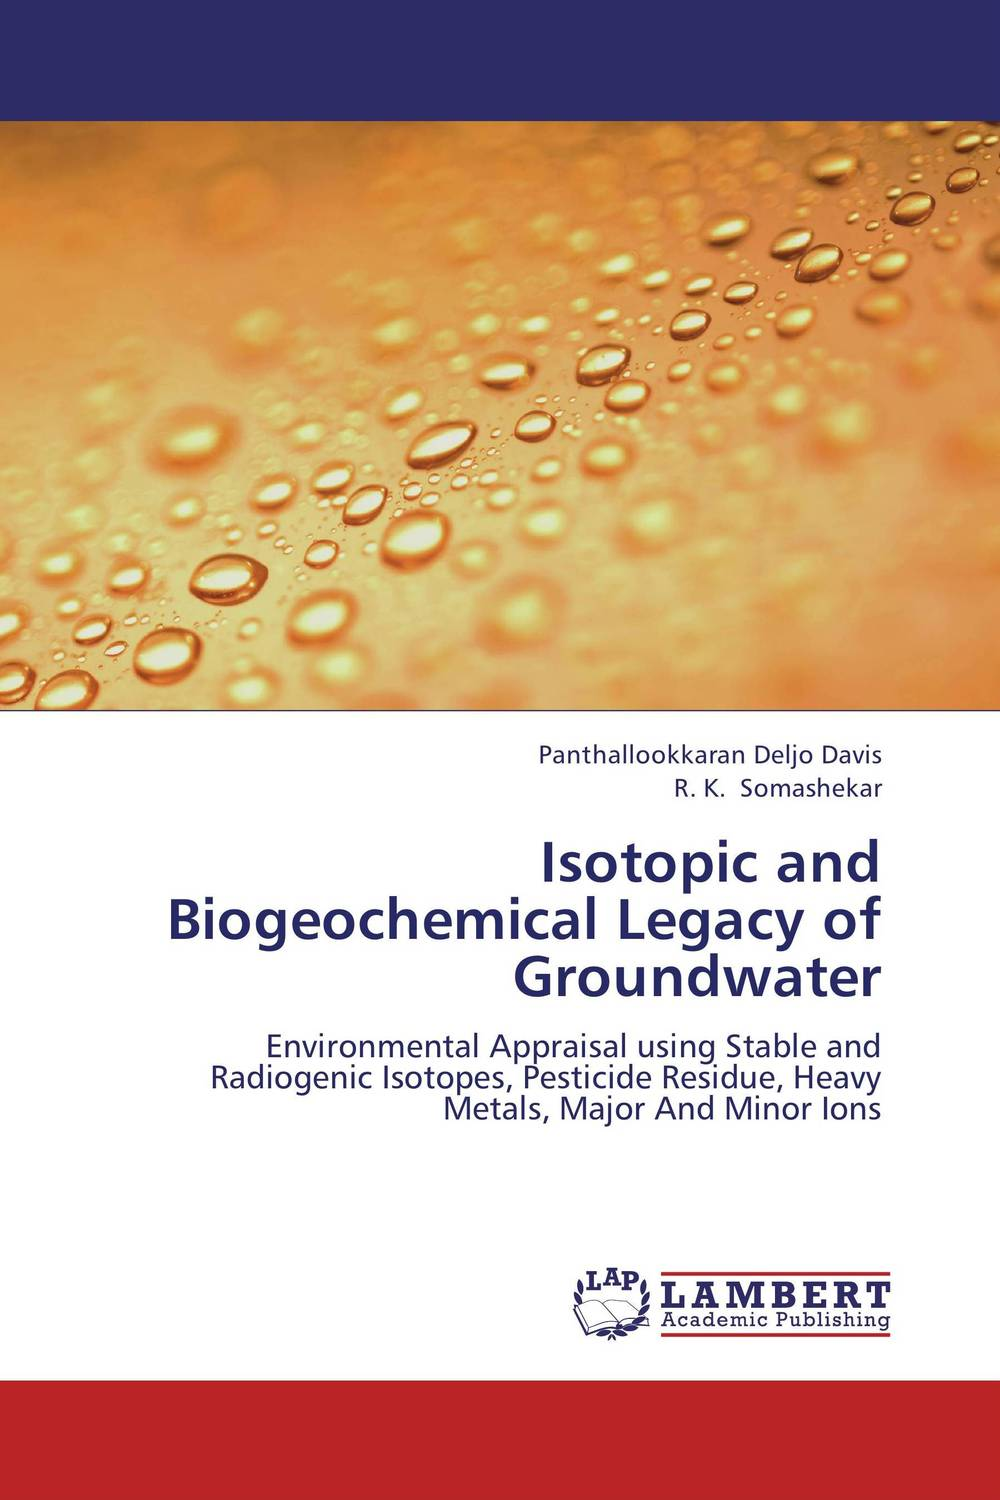 Isotopic and Biogeochemical Legacy of Groundwater impact of groundwater recharge on the surrounding environment